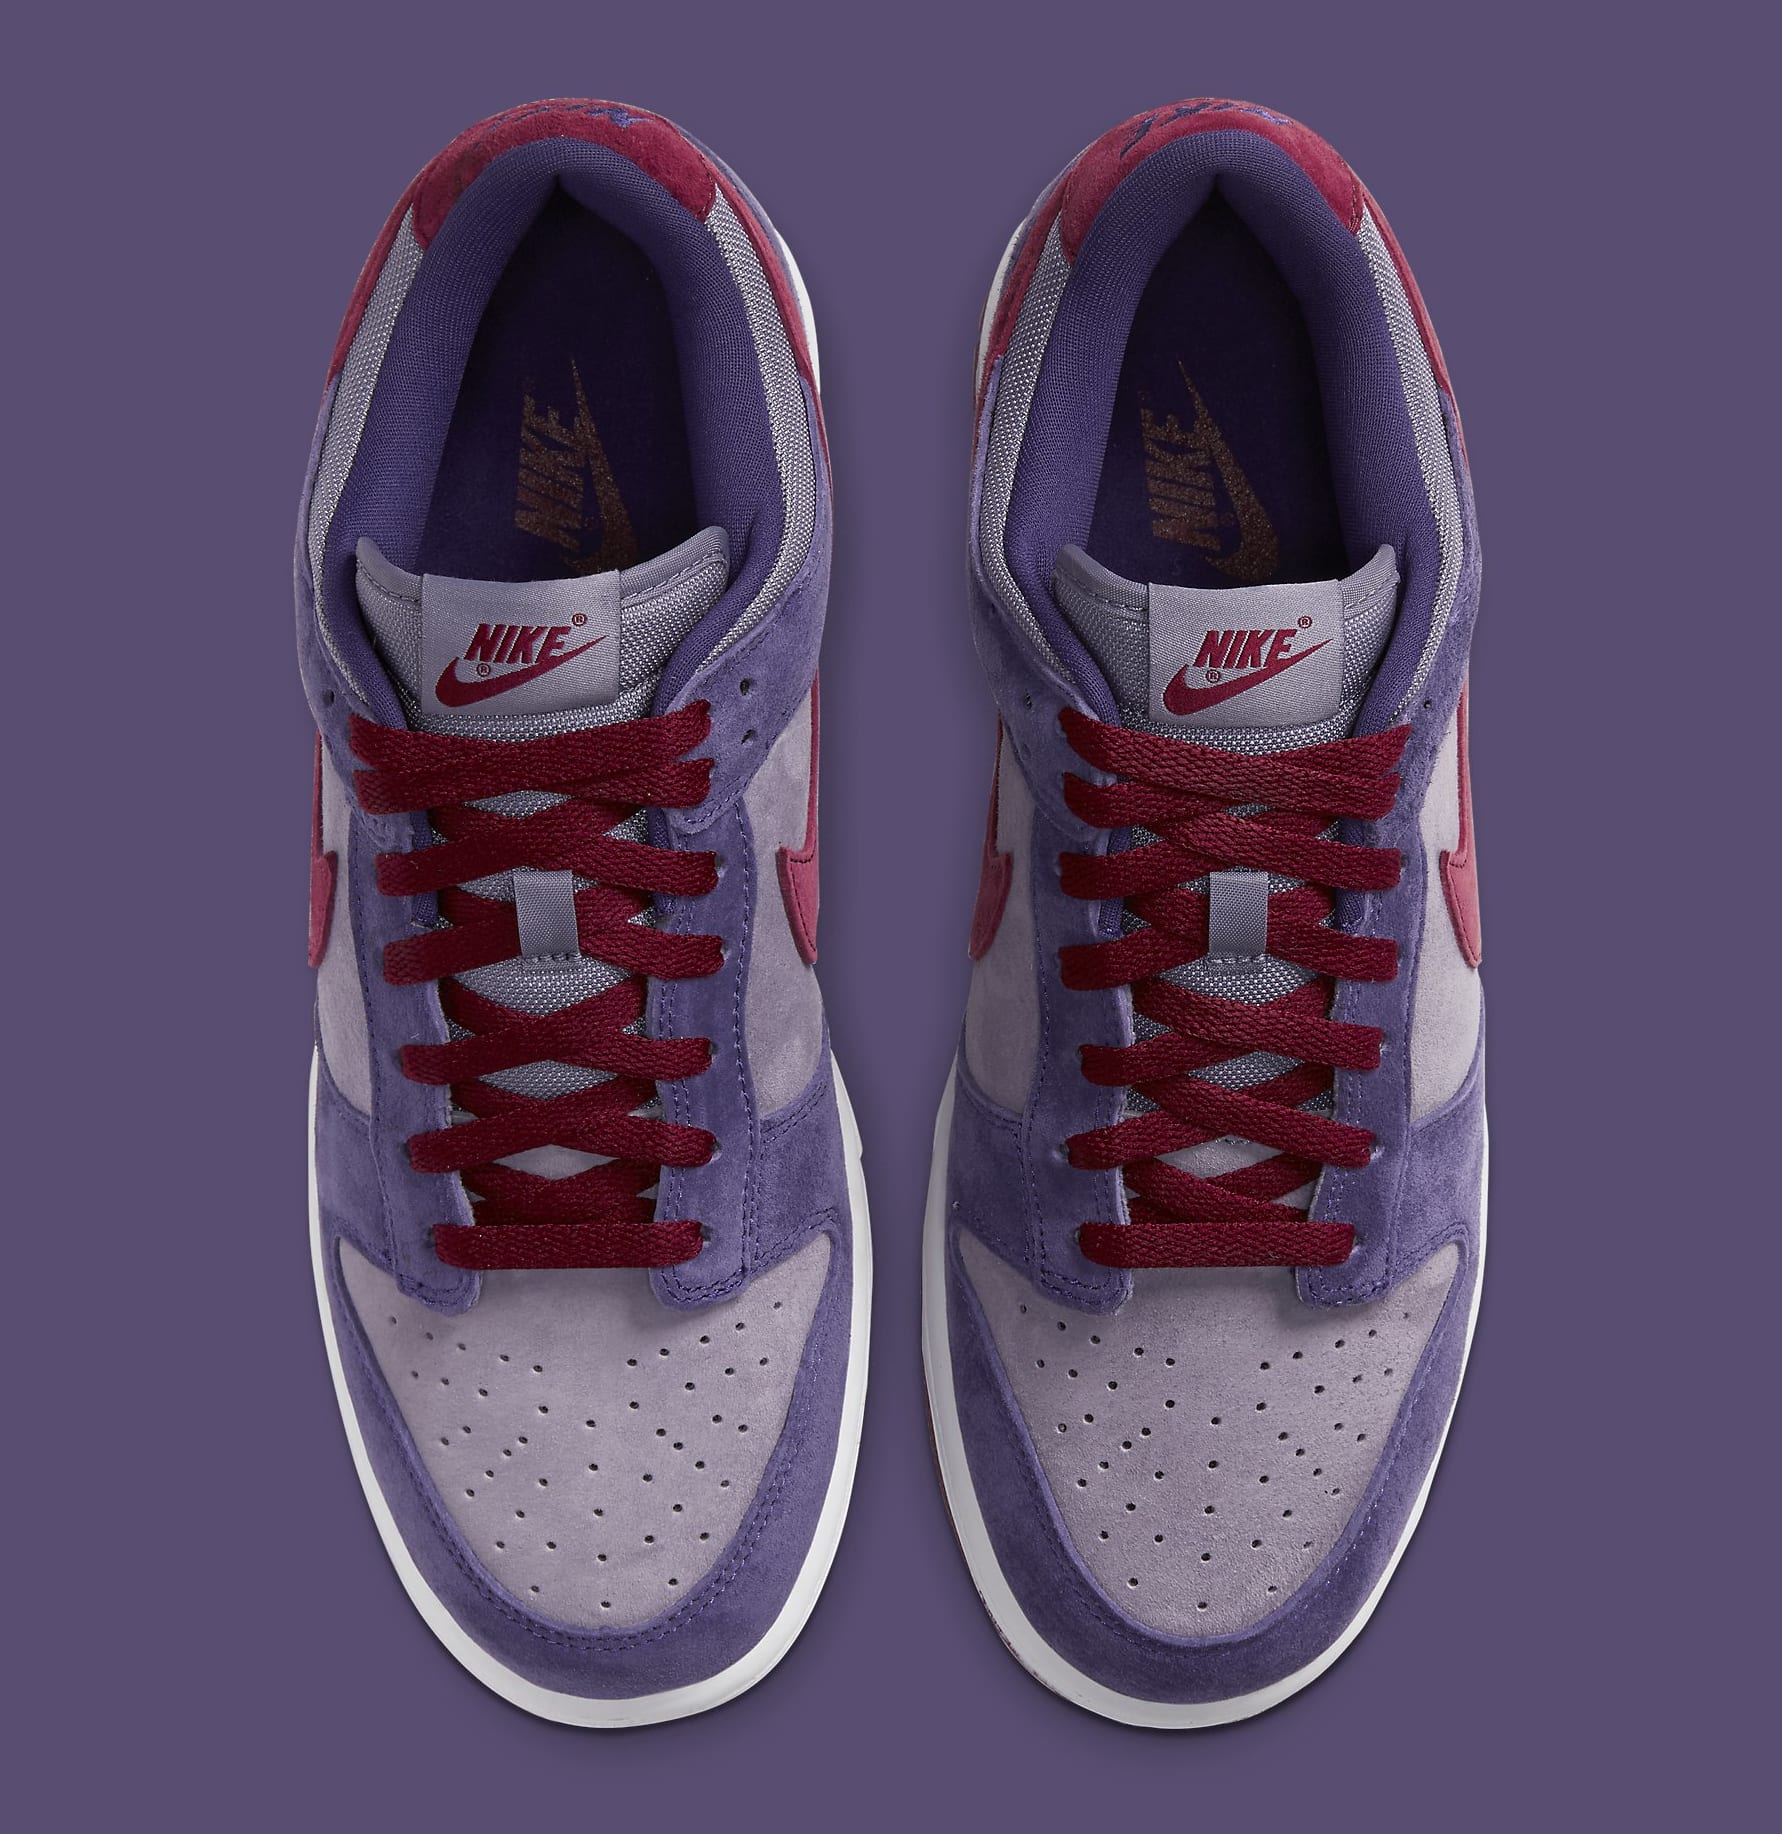 nike-dunk-low-plum-2020-cu1726-500-top